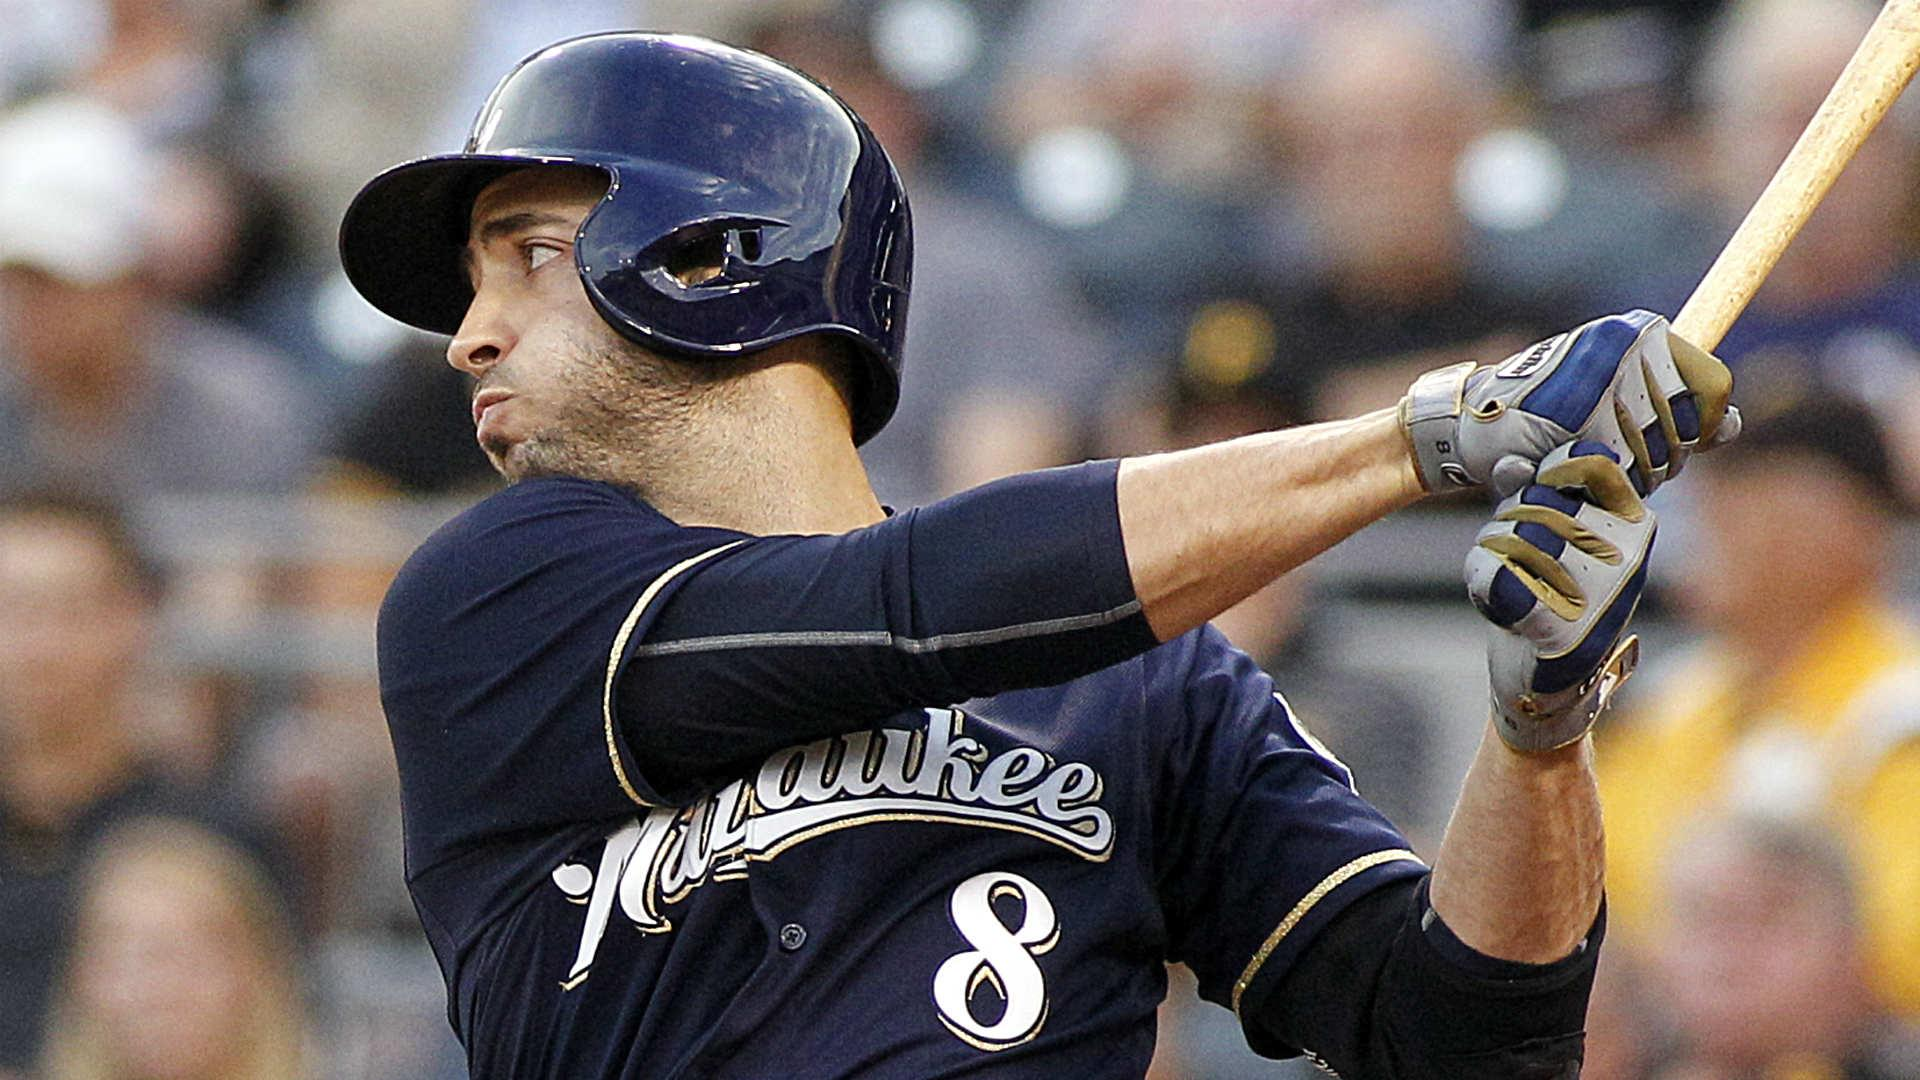 Red Sox among potential landing spots for Ryan Braun